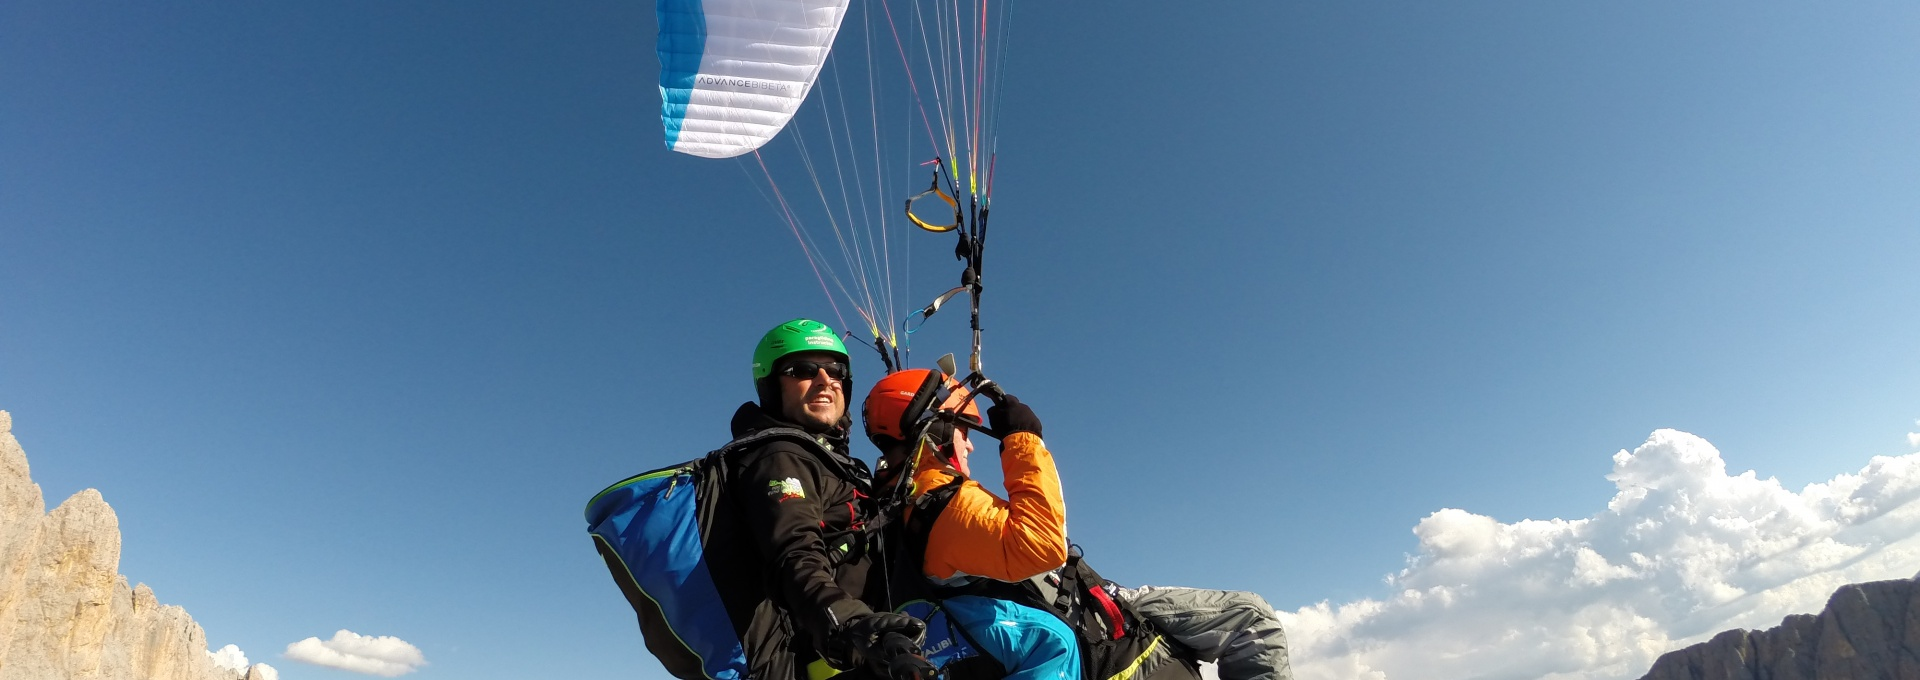 Sassolung - paragliding South Tyrol